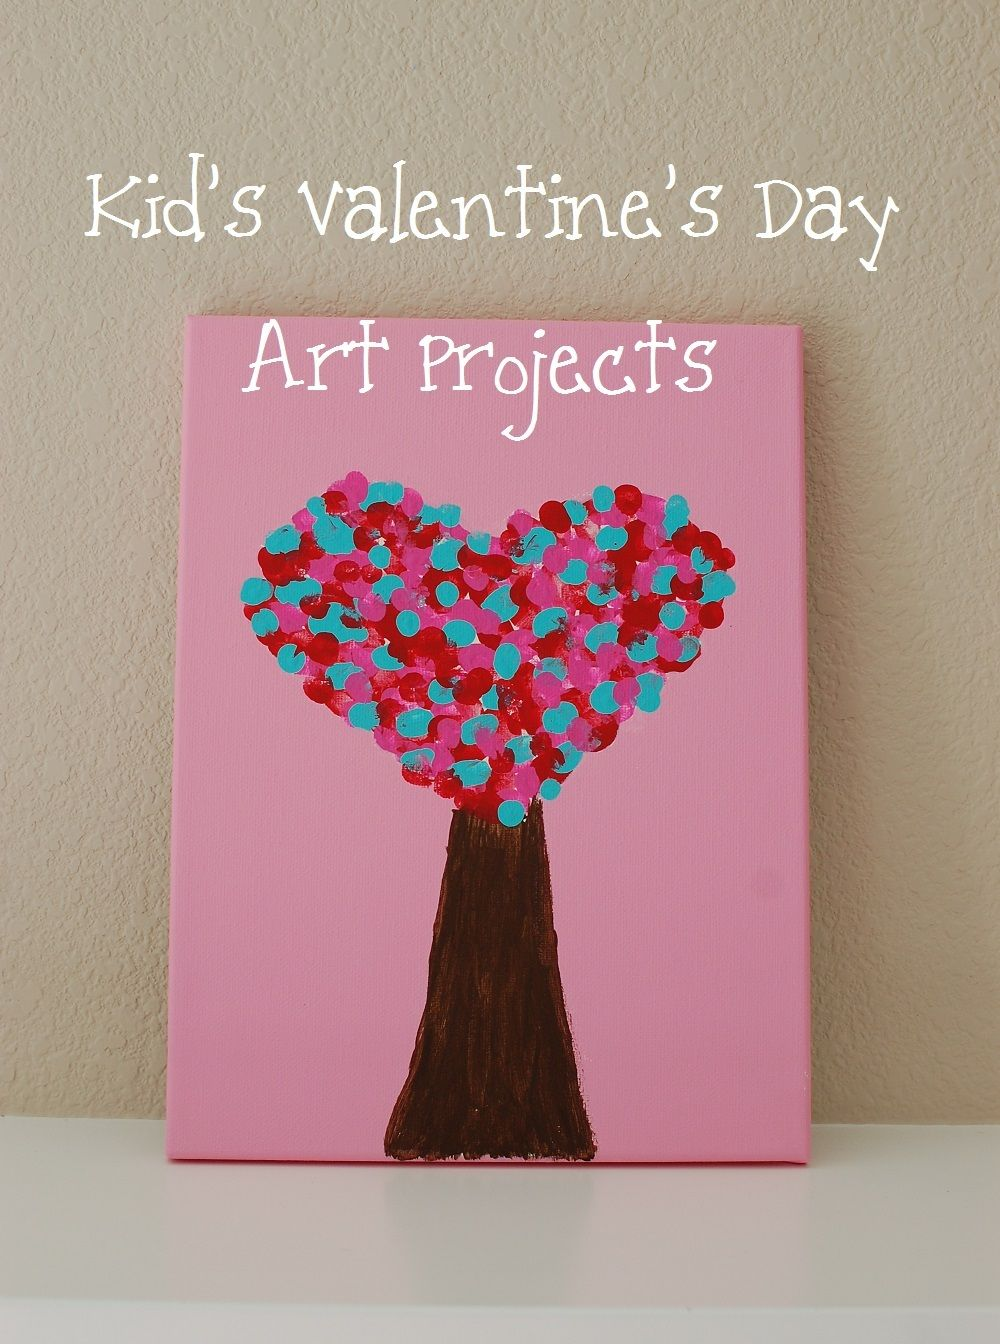 Toll Kidu0027s Valentineu0027s Day Art Projects.. I Think I Can Do This With Thumb Prints